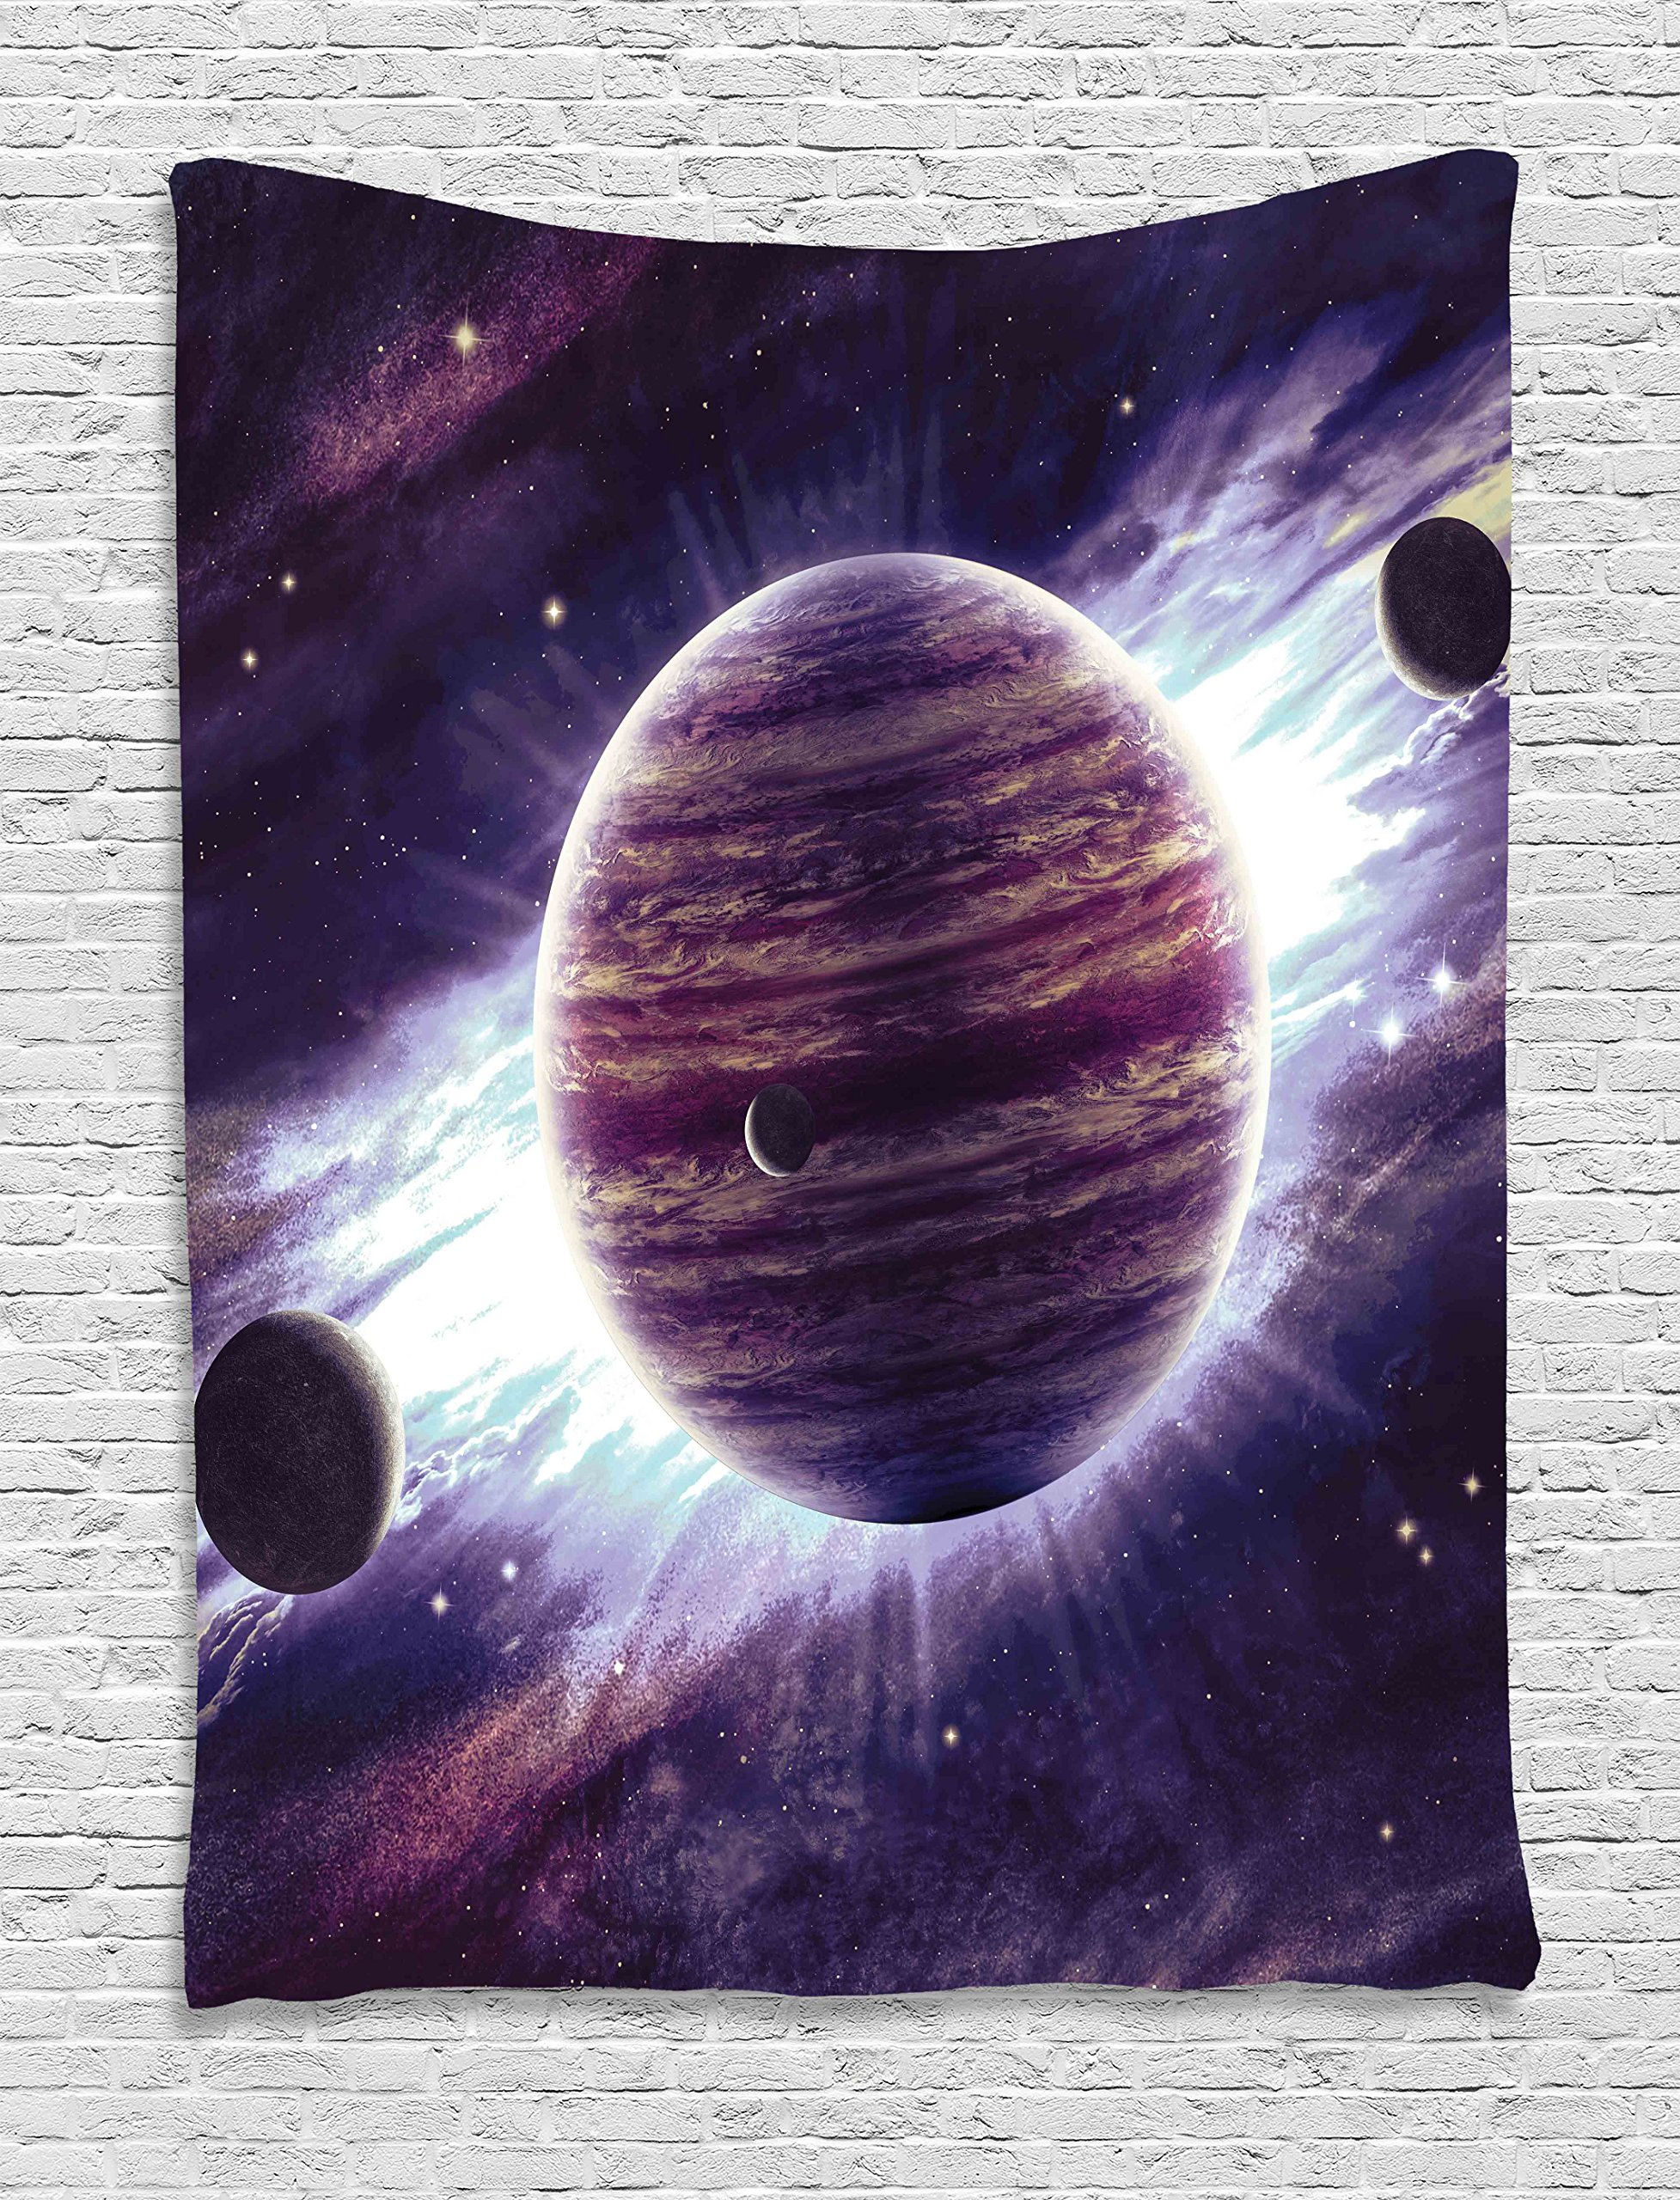 Ambesonne Galaxy Tapestry Wall Hanging, Outer Space Theme Planets Saturn Mars and Neptune Science Fiction Solar Scene Artprint, Bedroom Living Room Dorm Decor, 60 W x 80 L inches, Mauve Purple